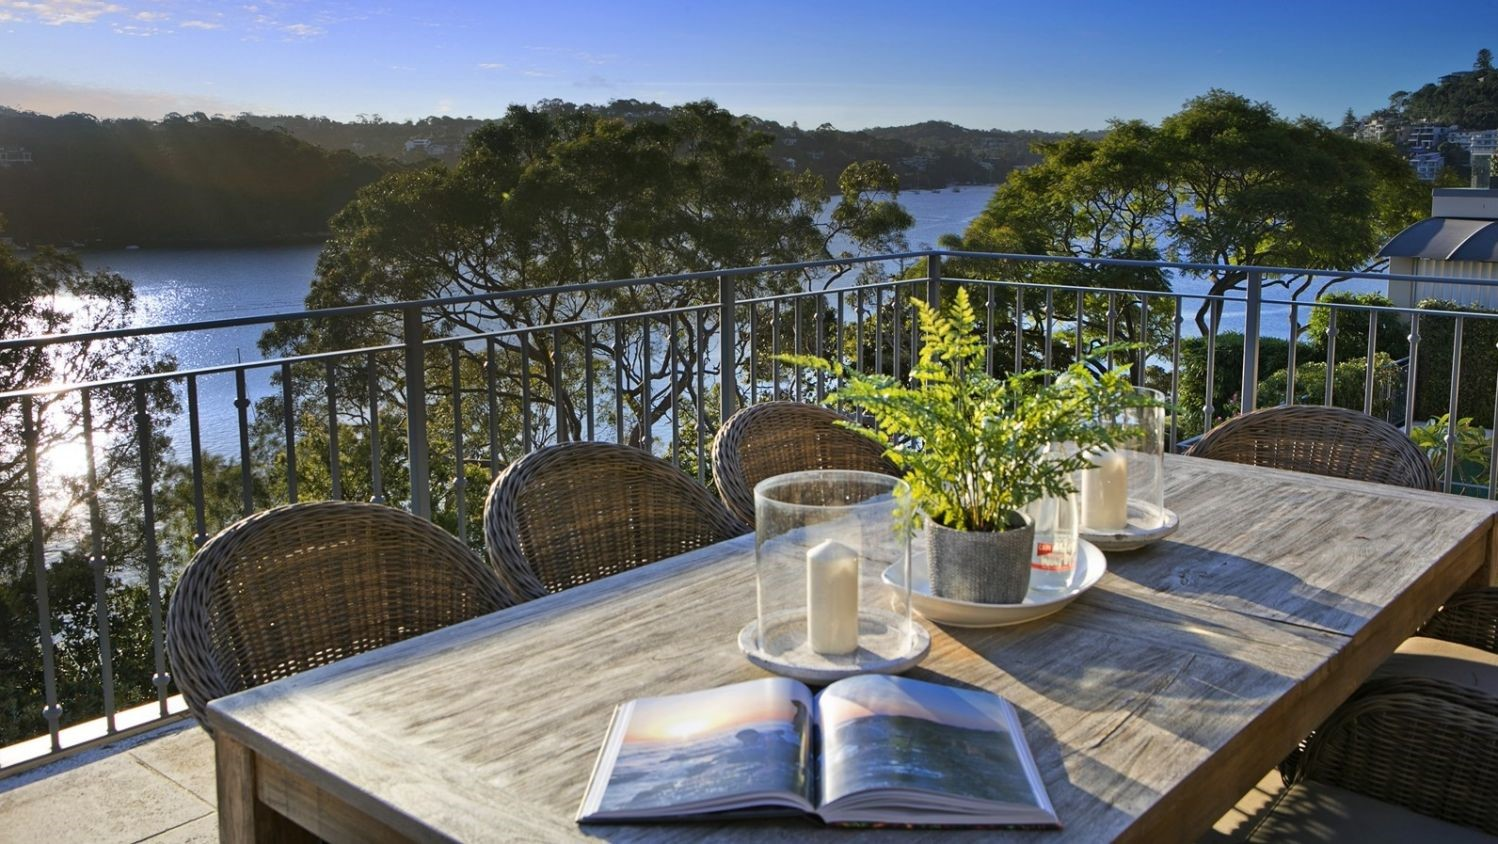 The geographical feng shui of Mosman's Beauty Point has lured a buyer from China this Golden Week.